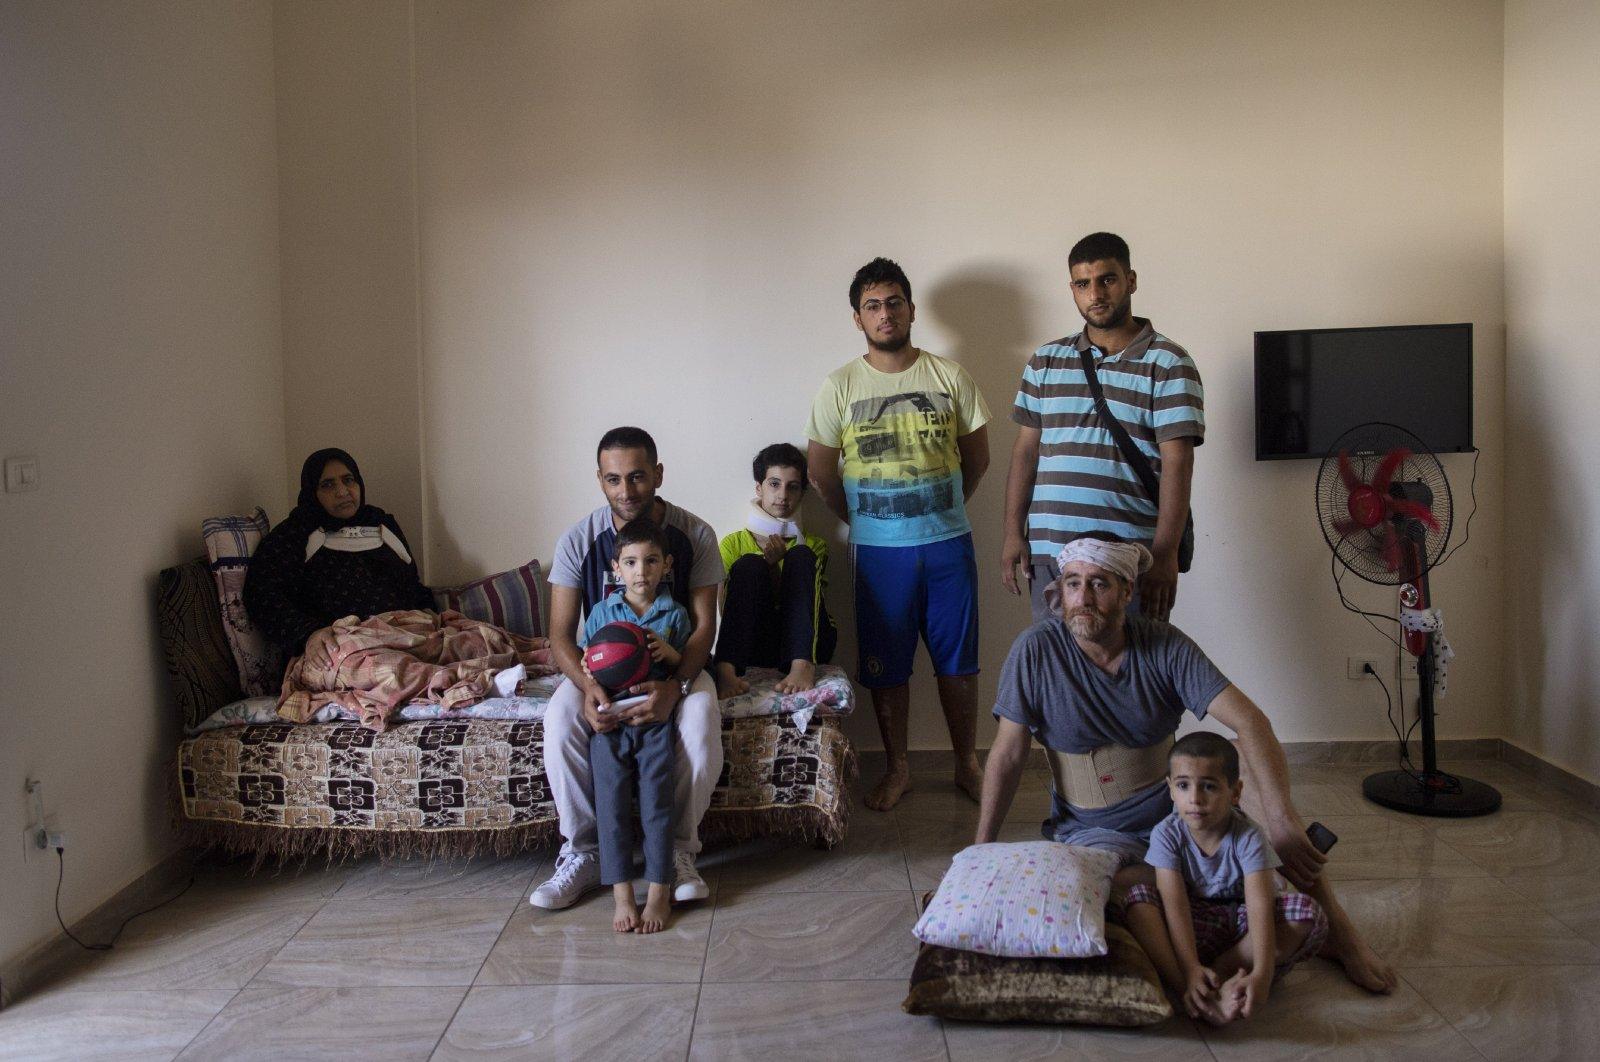 The family of Ali Kinno poses for a photograph, (from L to R) Fatmeh Kinno, 45, Mahmoud, 25, Hoda, 11, Qoteiba, 17, Mustafa, 28, Ali, 45 and Ahmad, 6, during an interview at a temporary apartment in the coastal town of Jiyeh, south of Beirut, Lebanon, Sept. 15, 2020. (AP Photo)